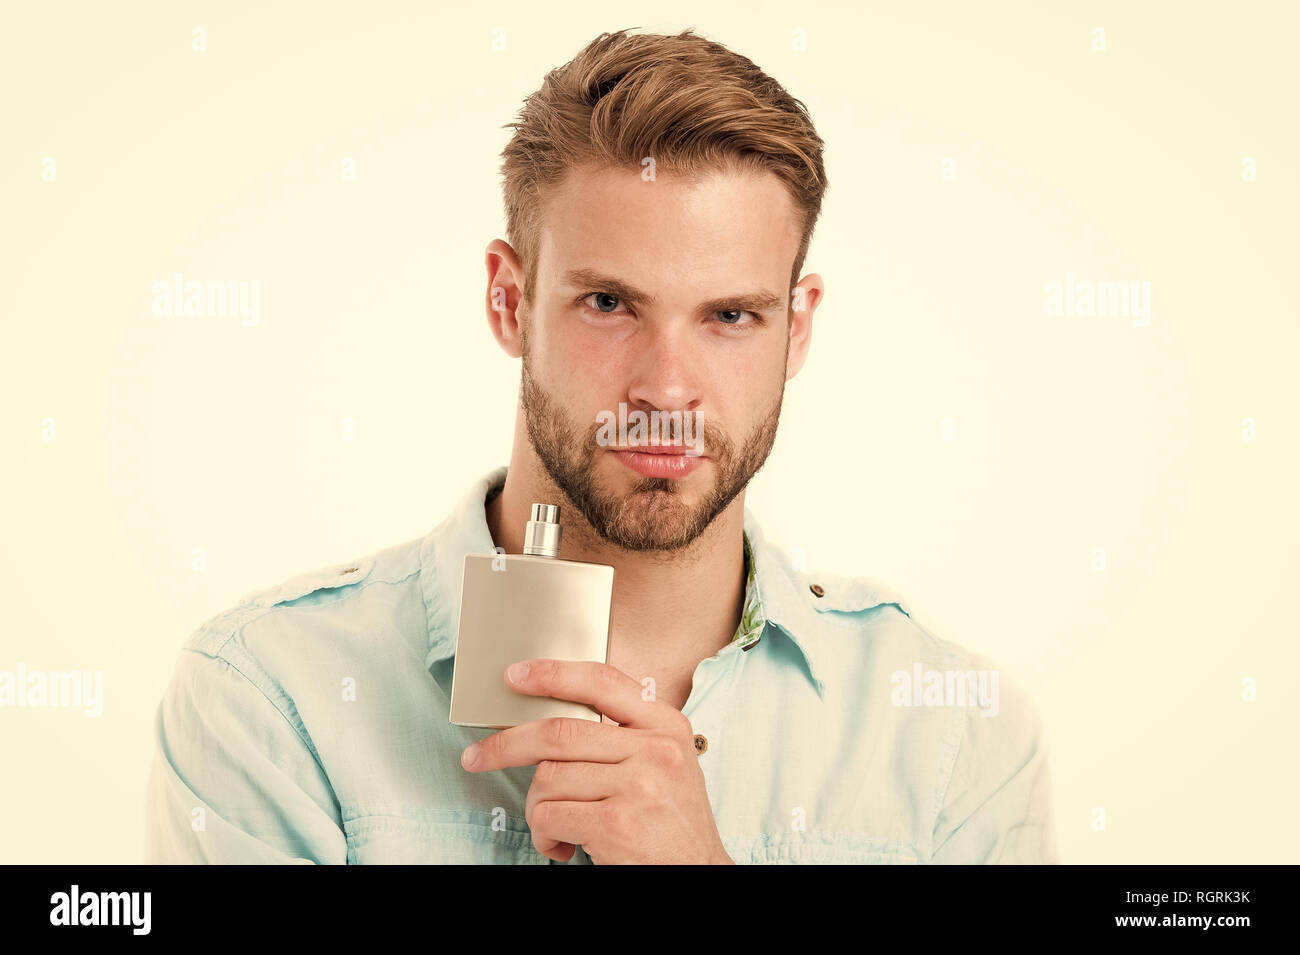 Guy hold perfume bottle. Bearded man with deodorant isolated on white background. Fashion cologne bottle. Hygiene and health. Getting fresh. - Stock Image